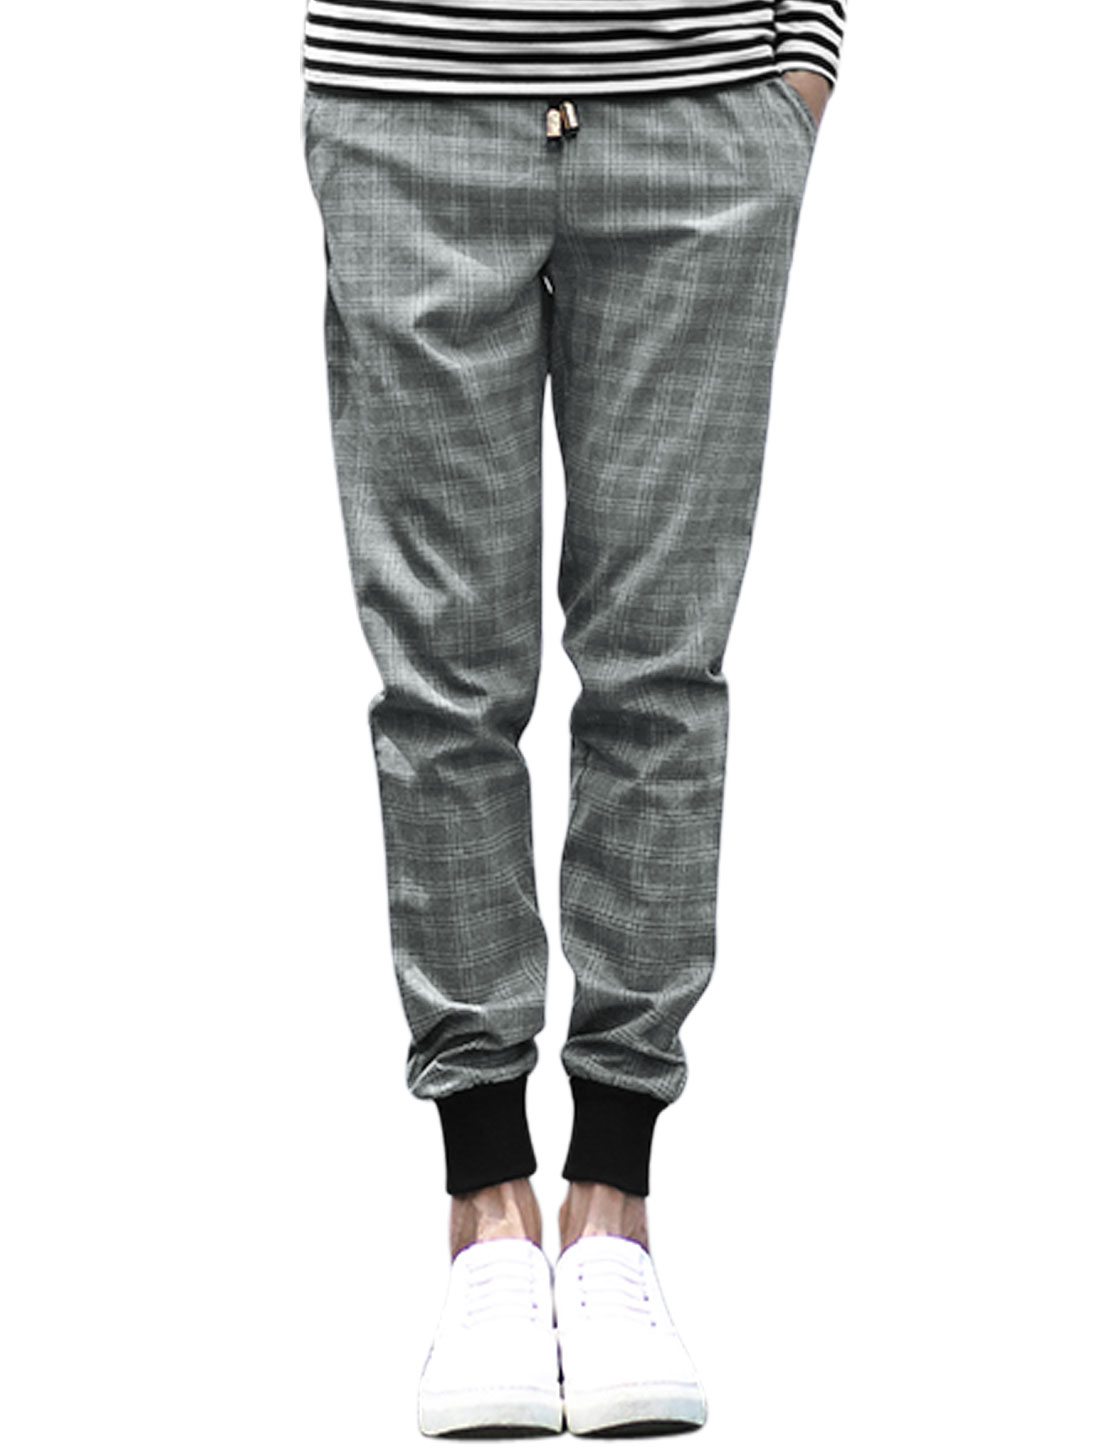 Men Natural Waist Tapered Ribbed Cuffs Plaids Pants Gray W32